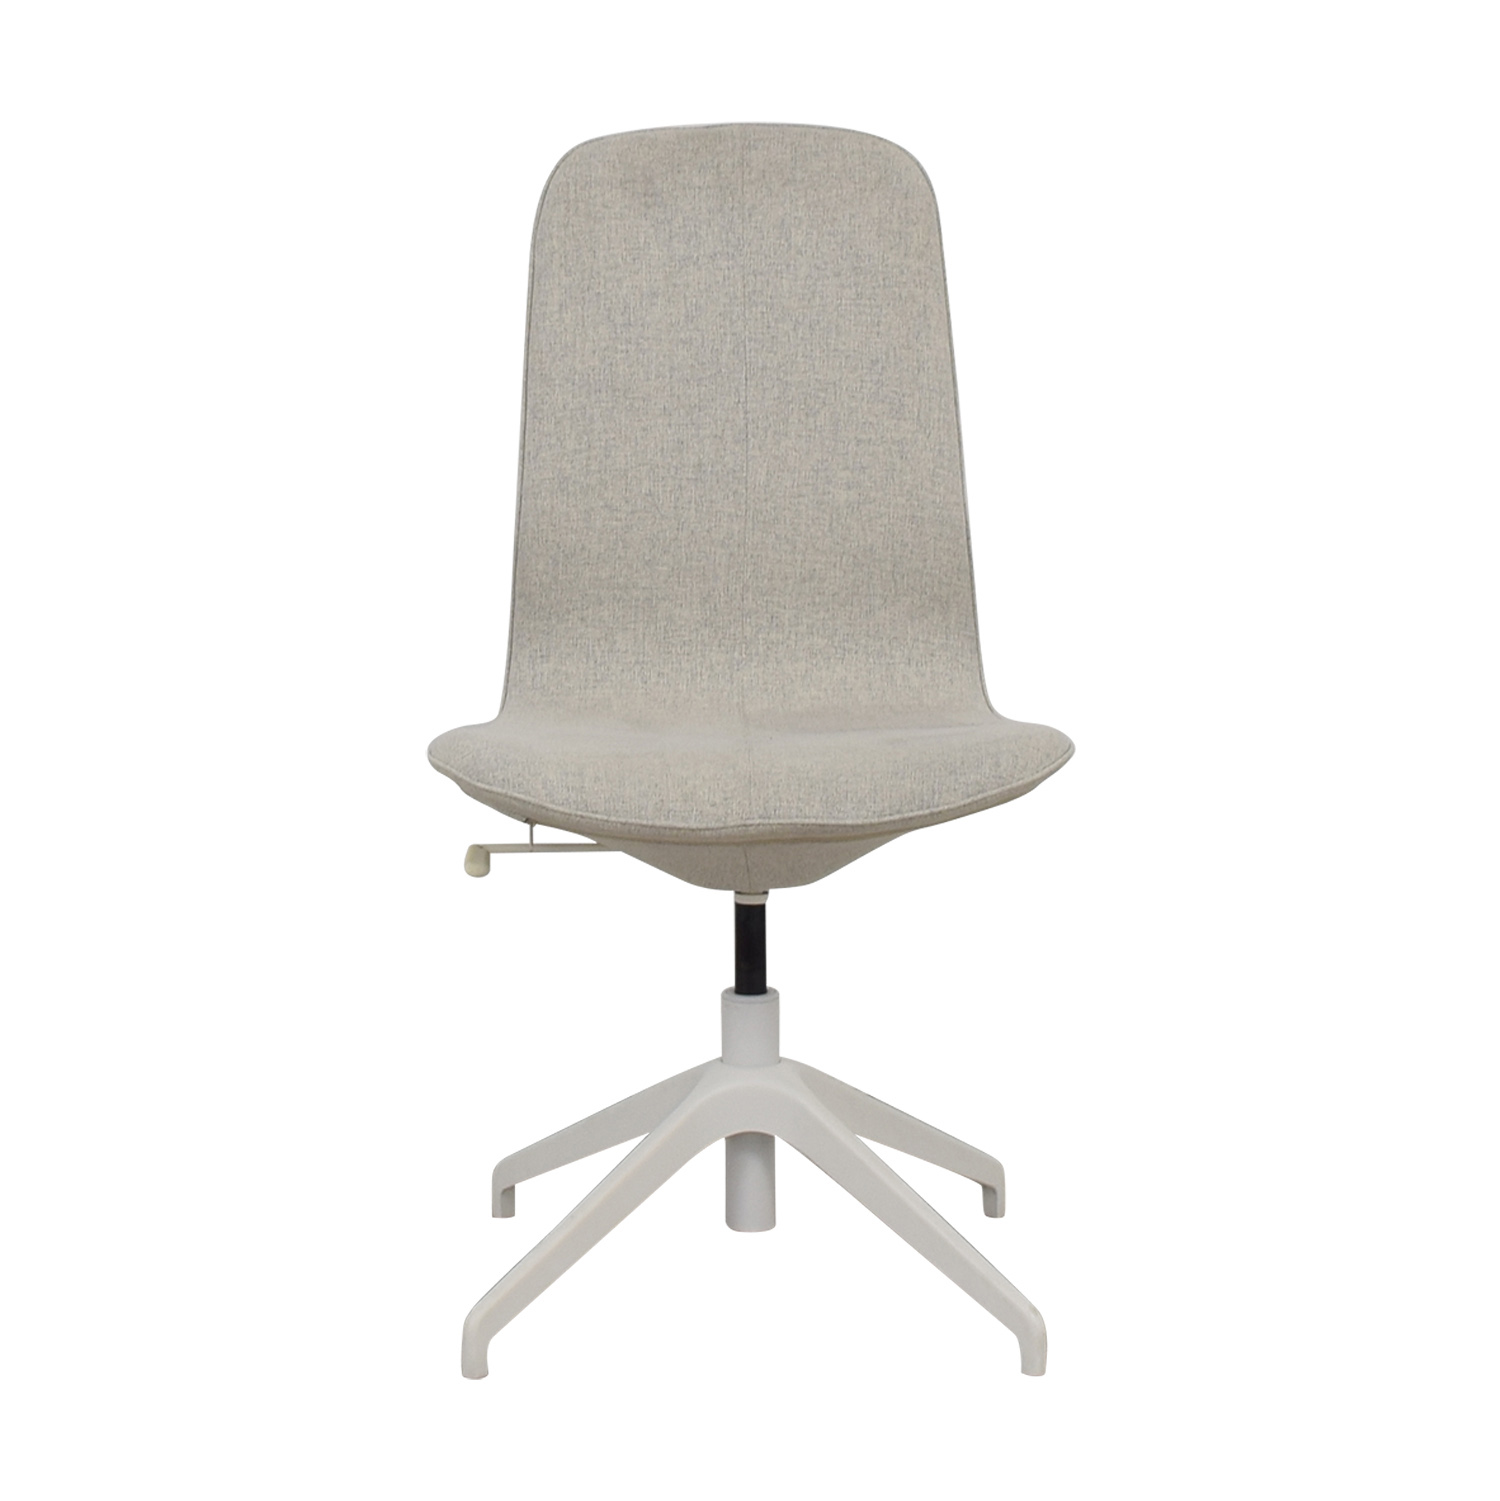 ikea swivel chair where to buy bean bag chairs 85 off langfjall grey shop online